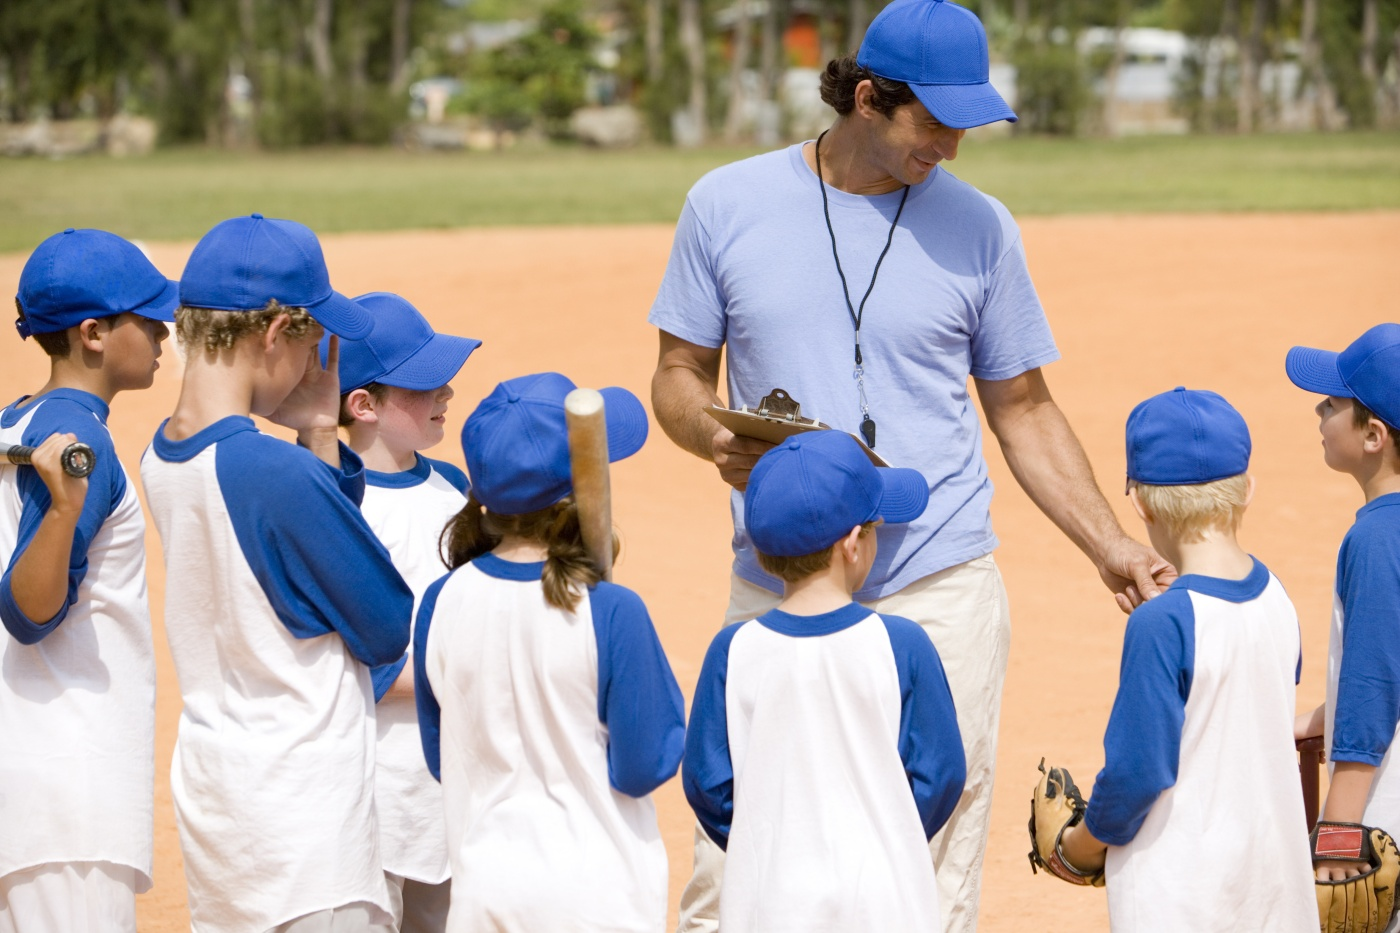 Little league baseball team and coach on pitch